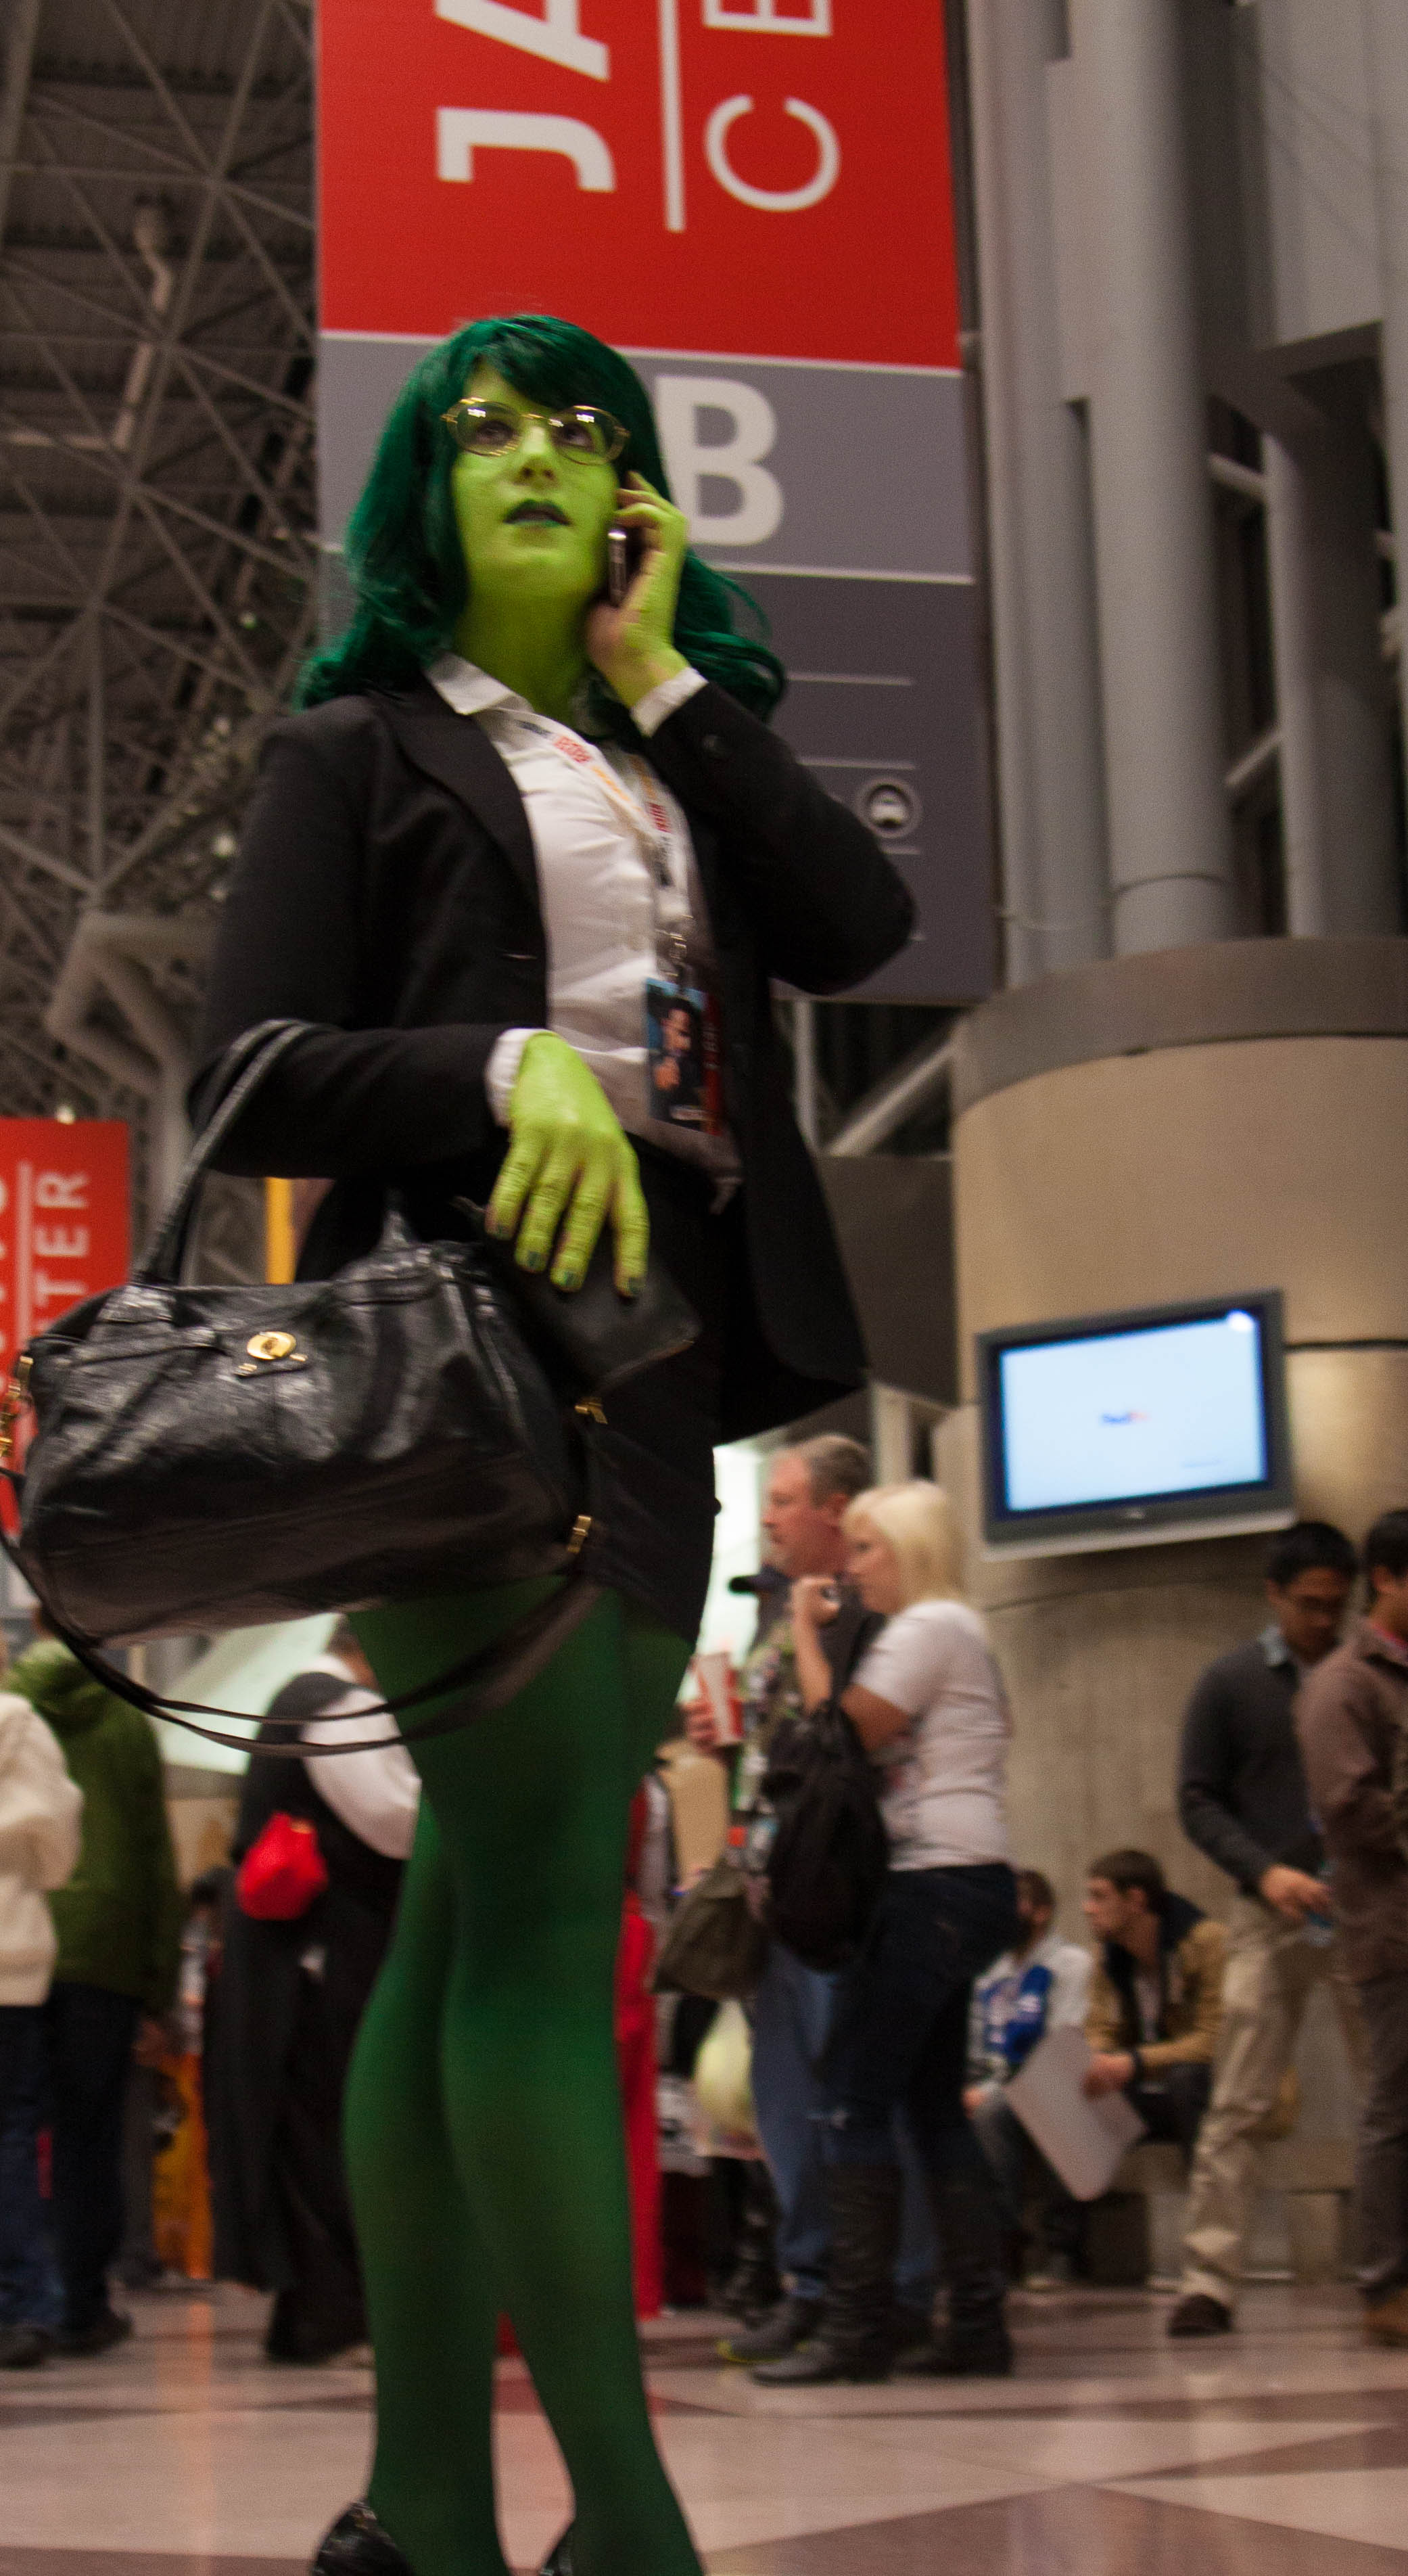 FileShe-Hulk cosplay lawyer suit NYCC2012.jpg & File:She-Hulk cosplay lawyer suit NYCC2012.jpg - Wikimedia Commons